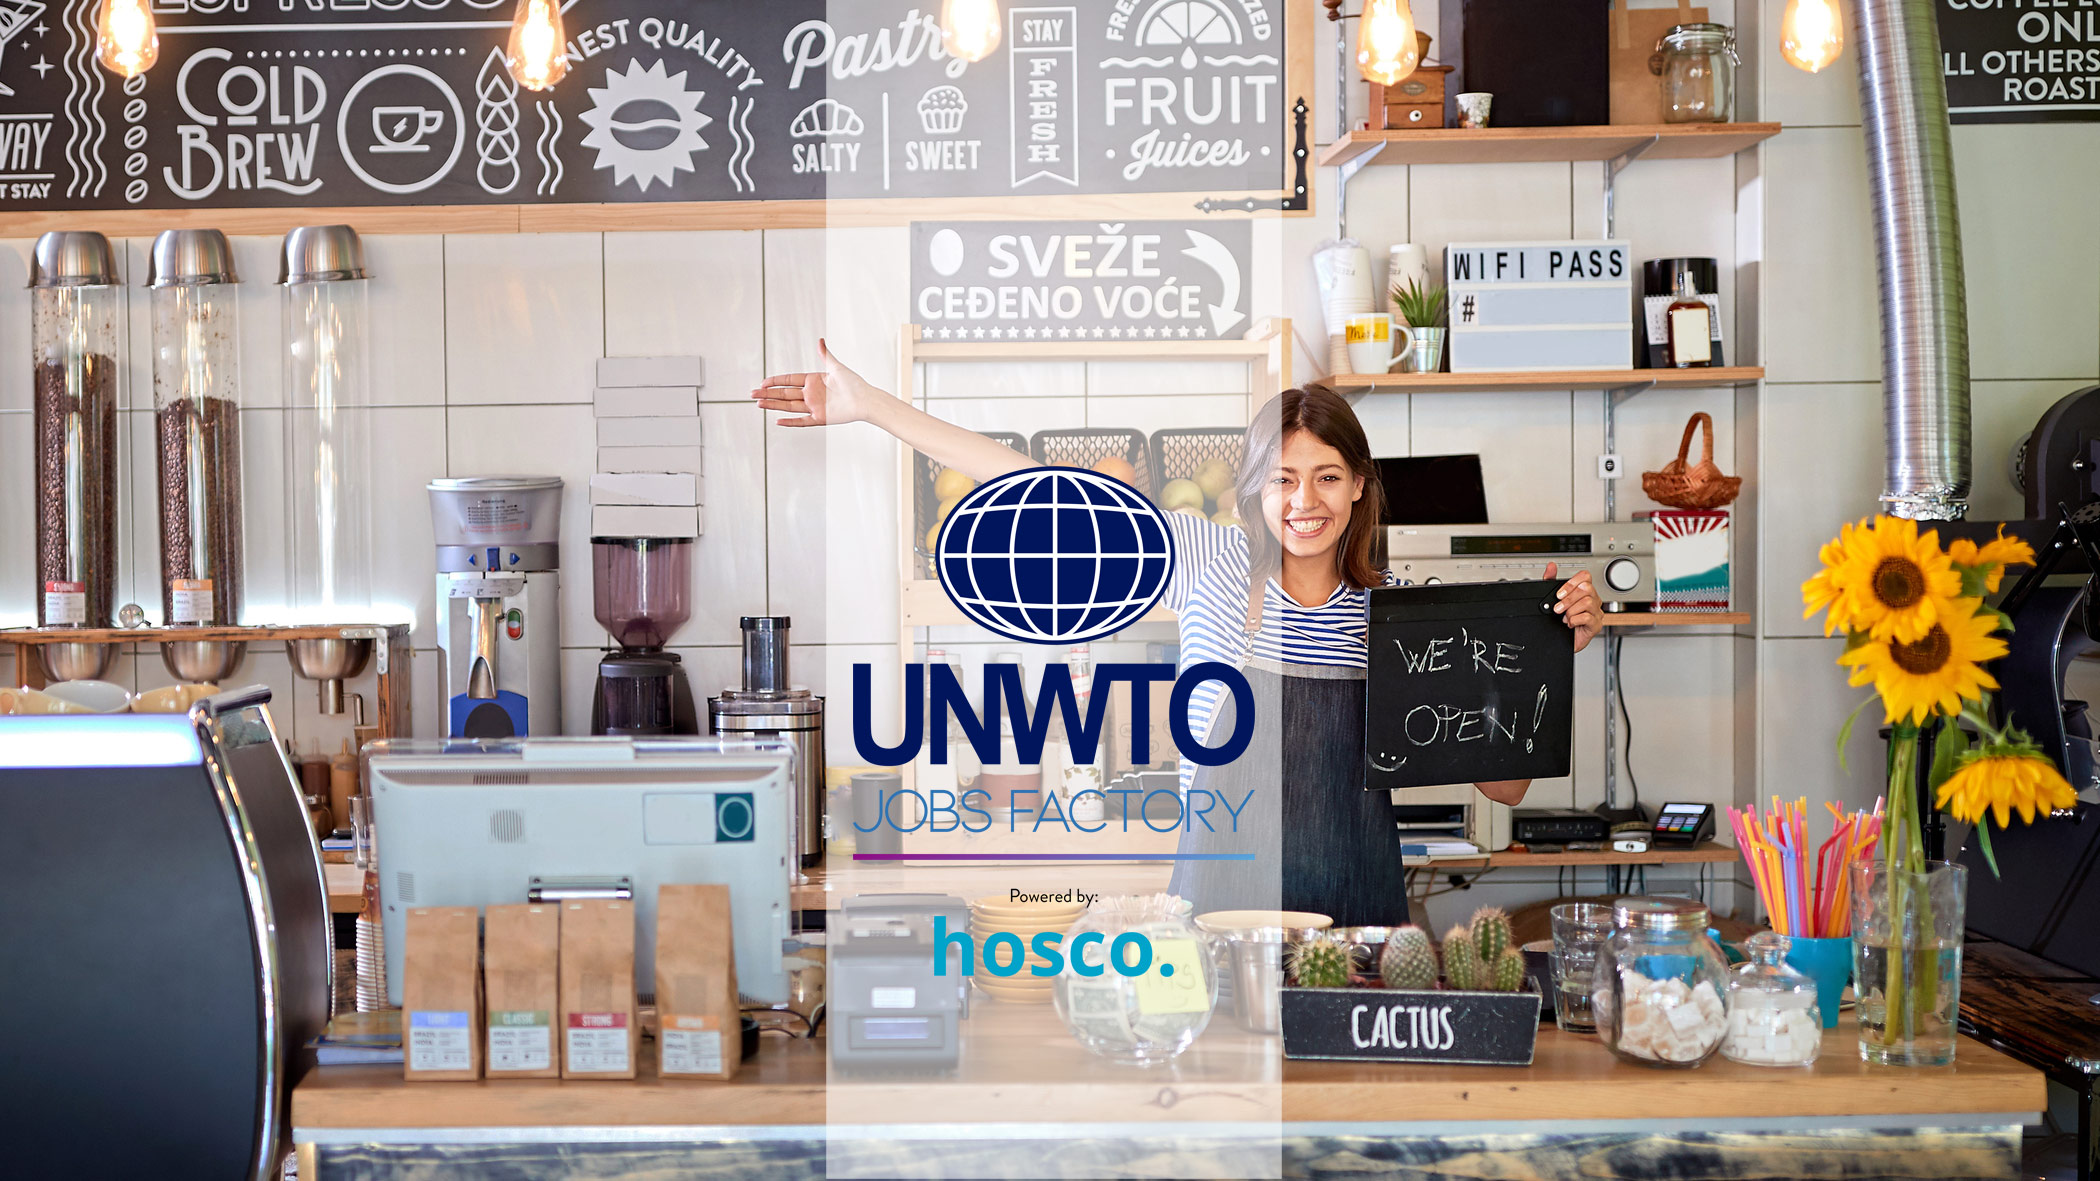 UNWTO Jobs Factory Powered by Hosco